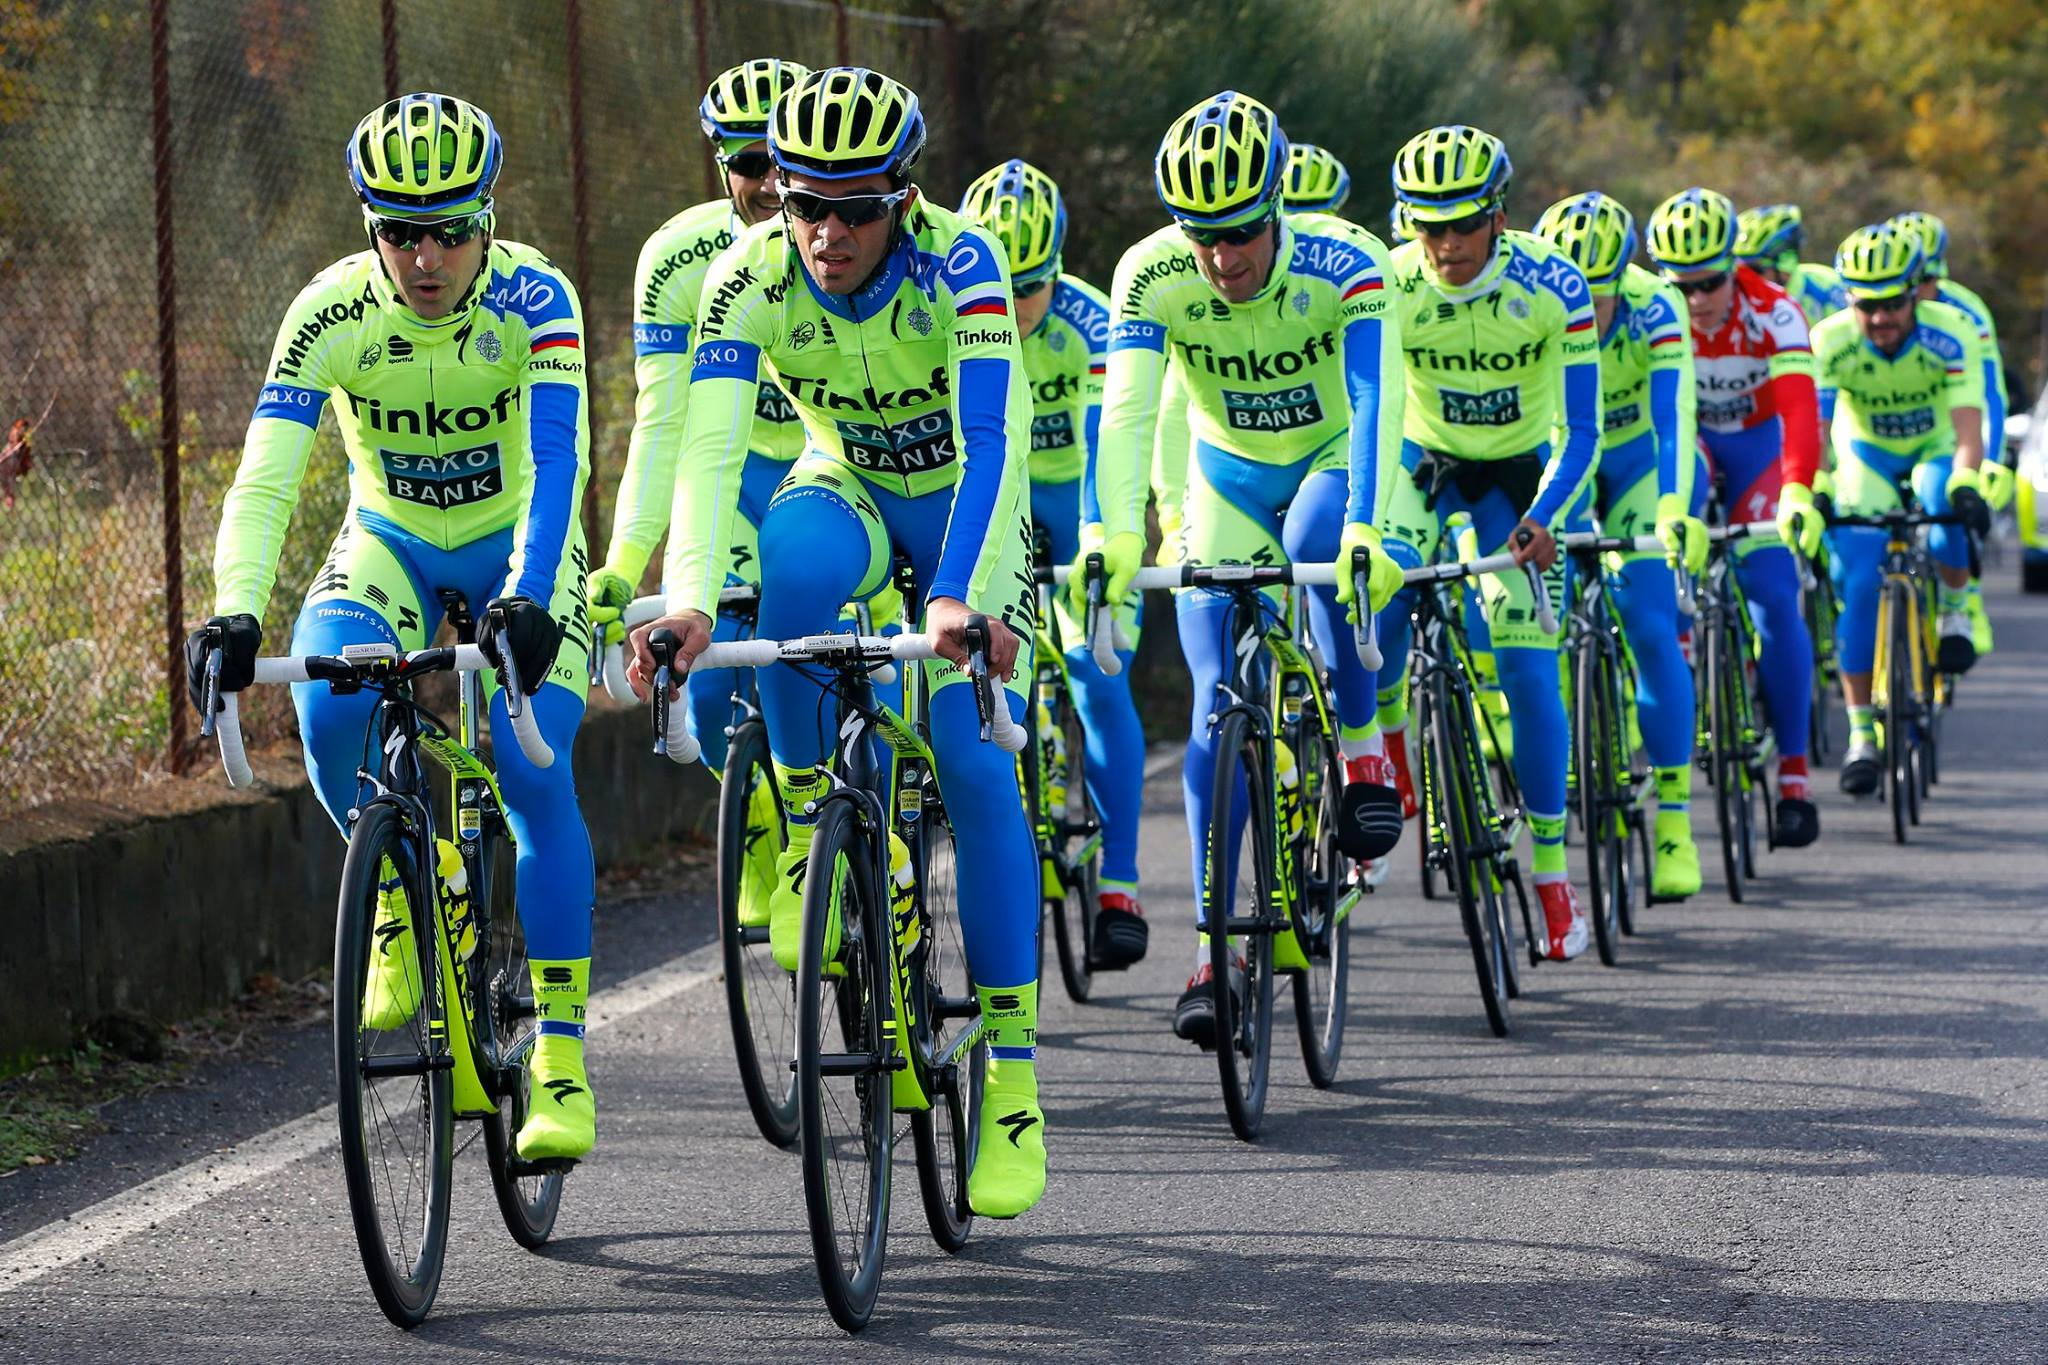 Team Tinkoff-Saxo